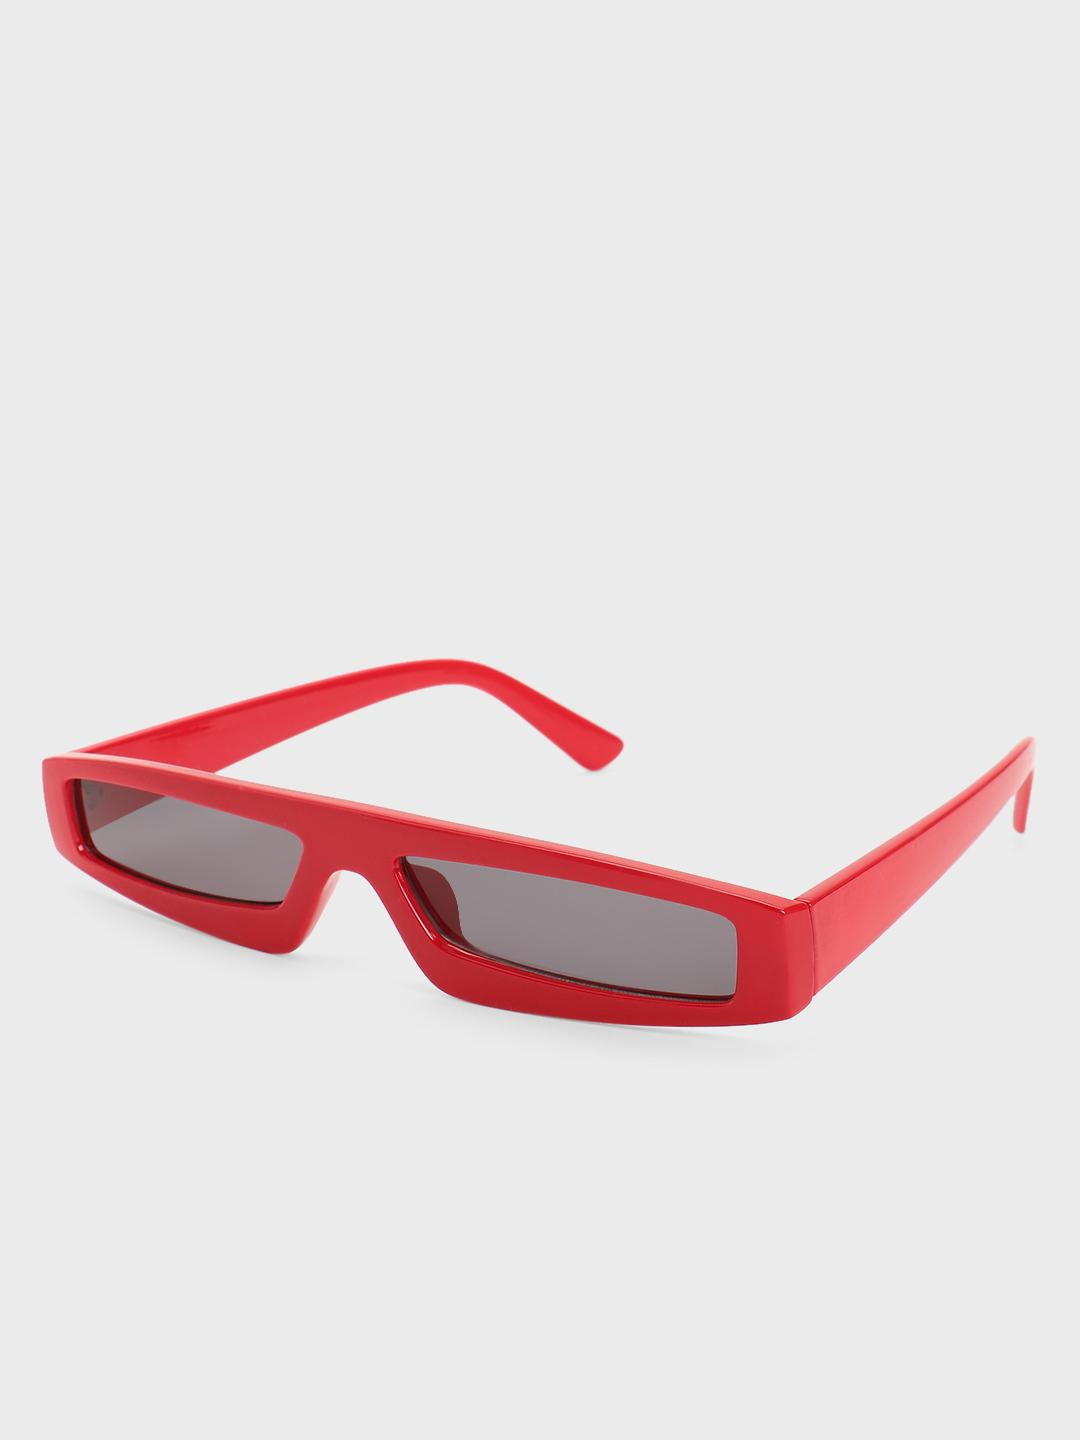 Pataaka Red Coloured Frame Futuristic Retro Sunglasses 1